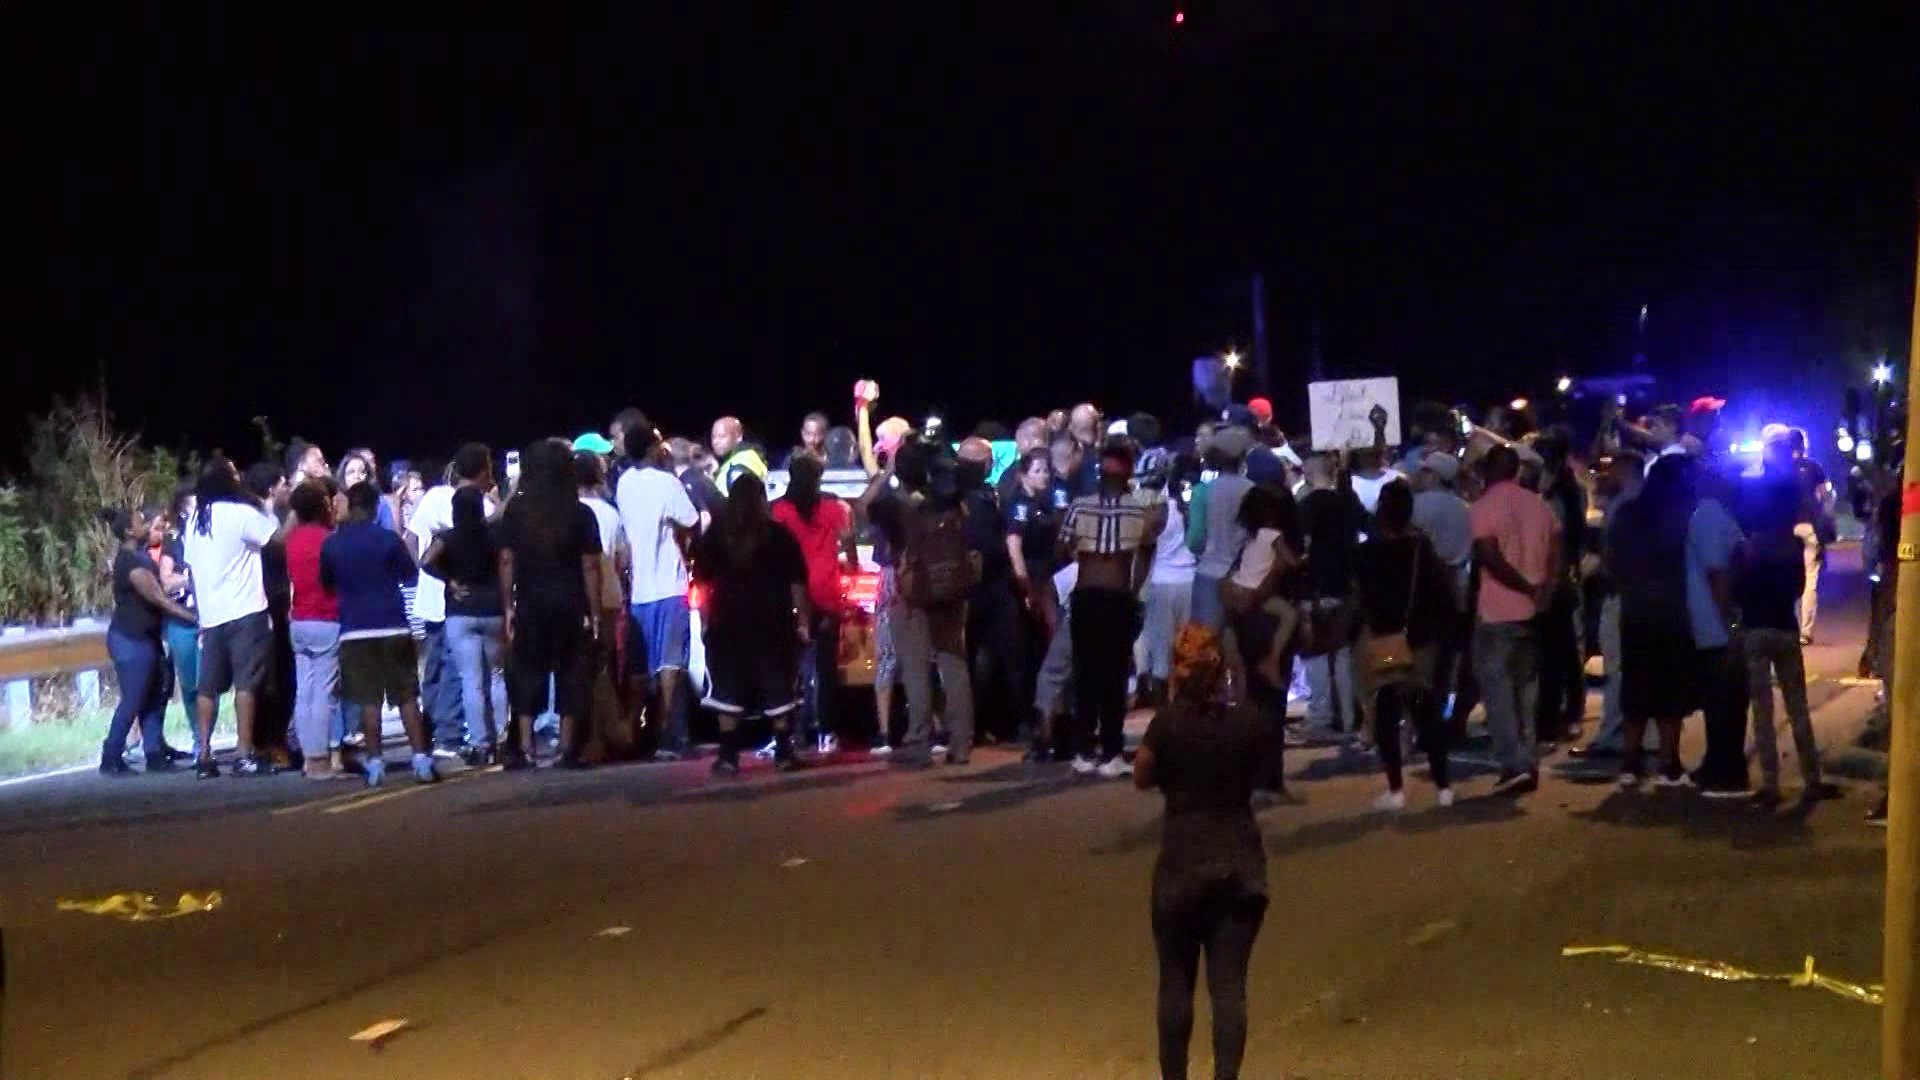 Protests Break Out After Charlotte Police Shoot Man With Gun